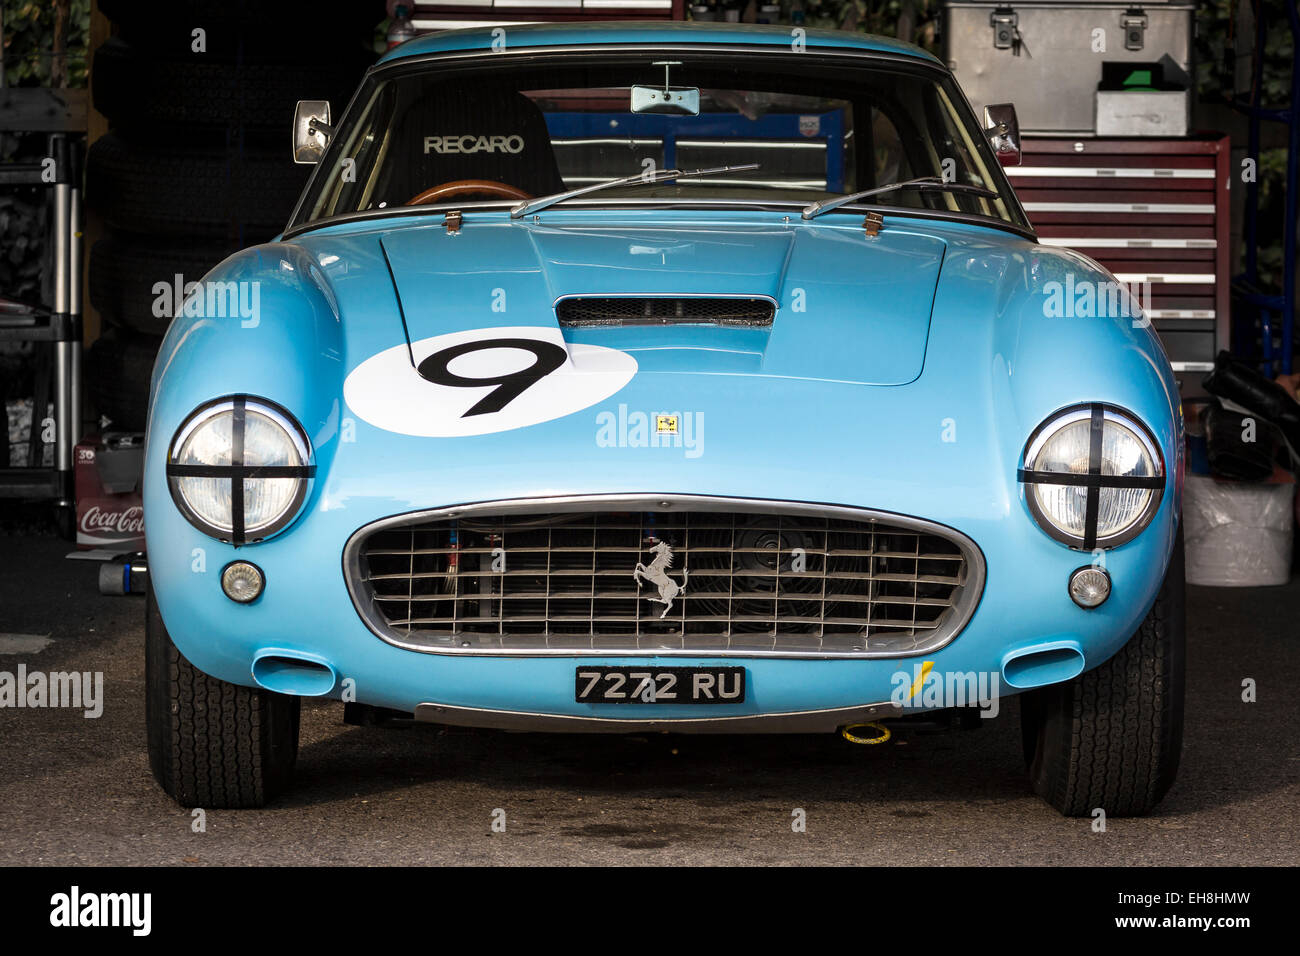 1960 Ferrari 250 GT SWB/C in the paddock garage at the 2014 Goodwood Revival, Sussex, UK. - Stock Image